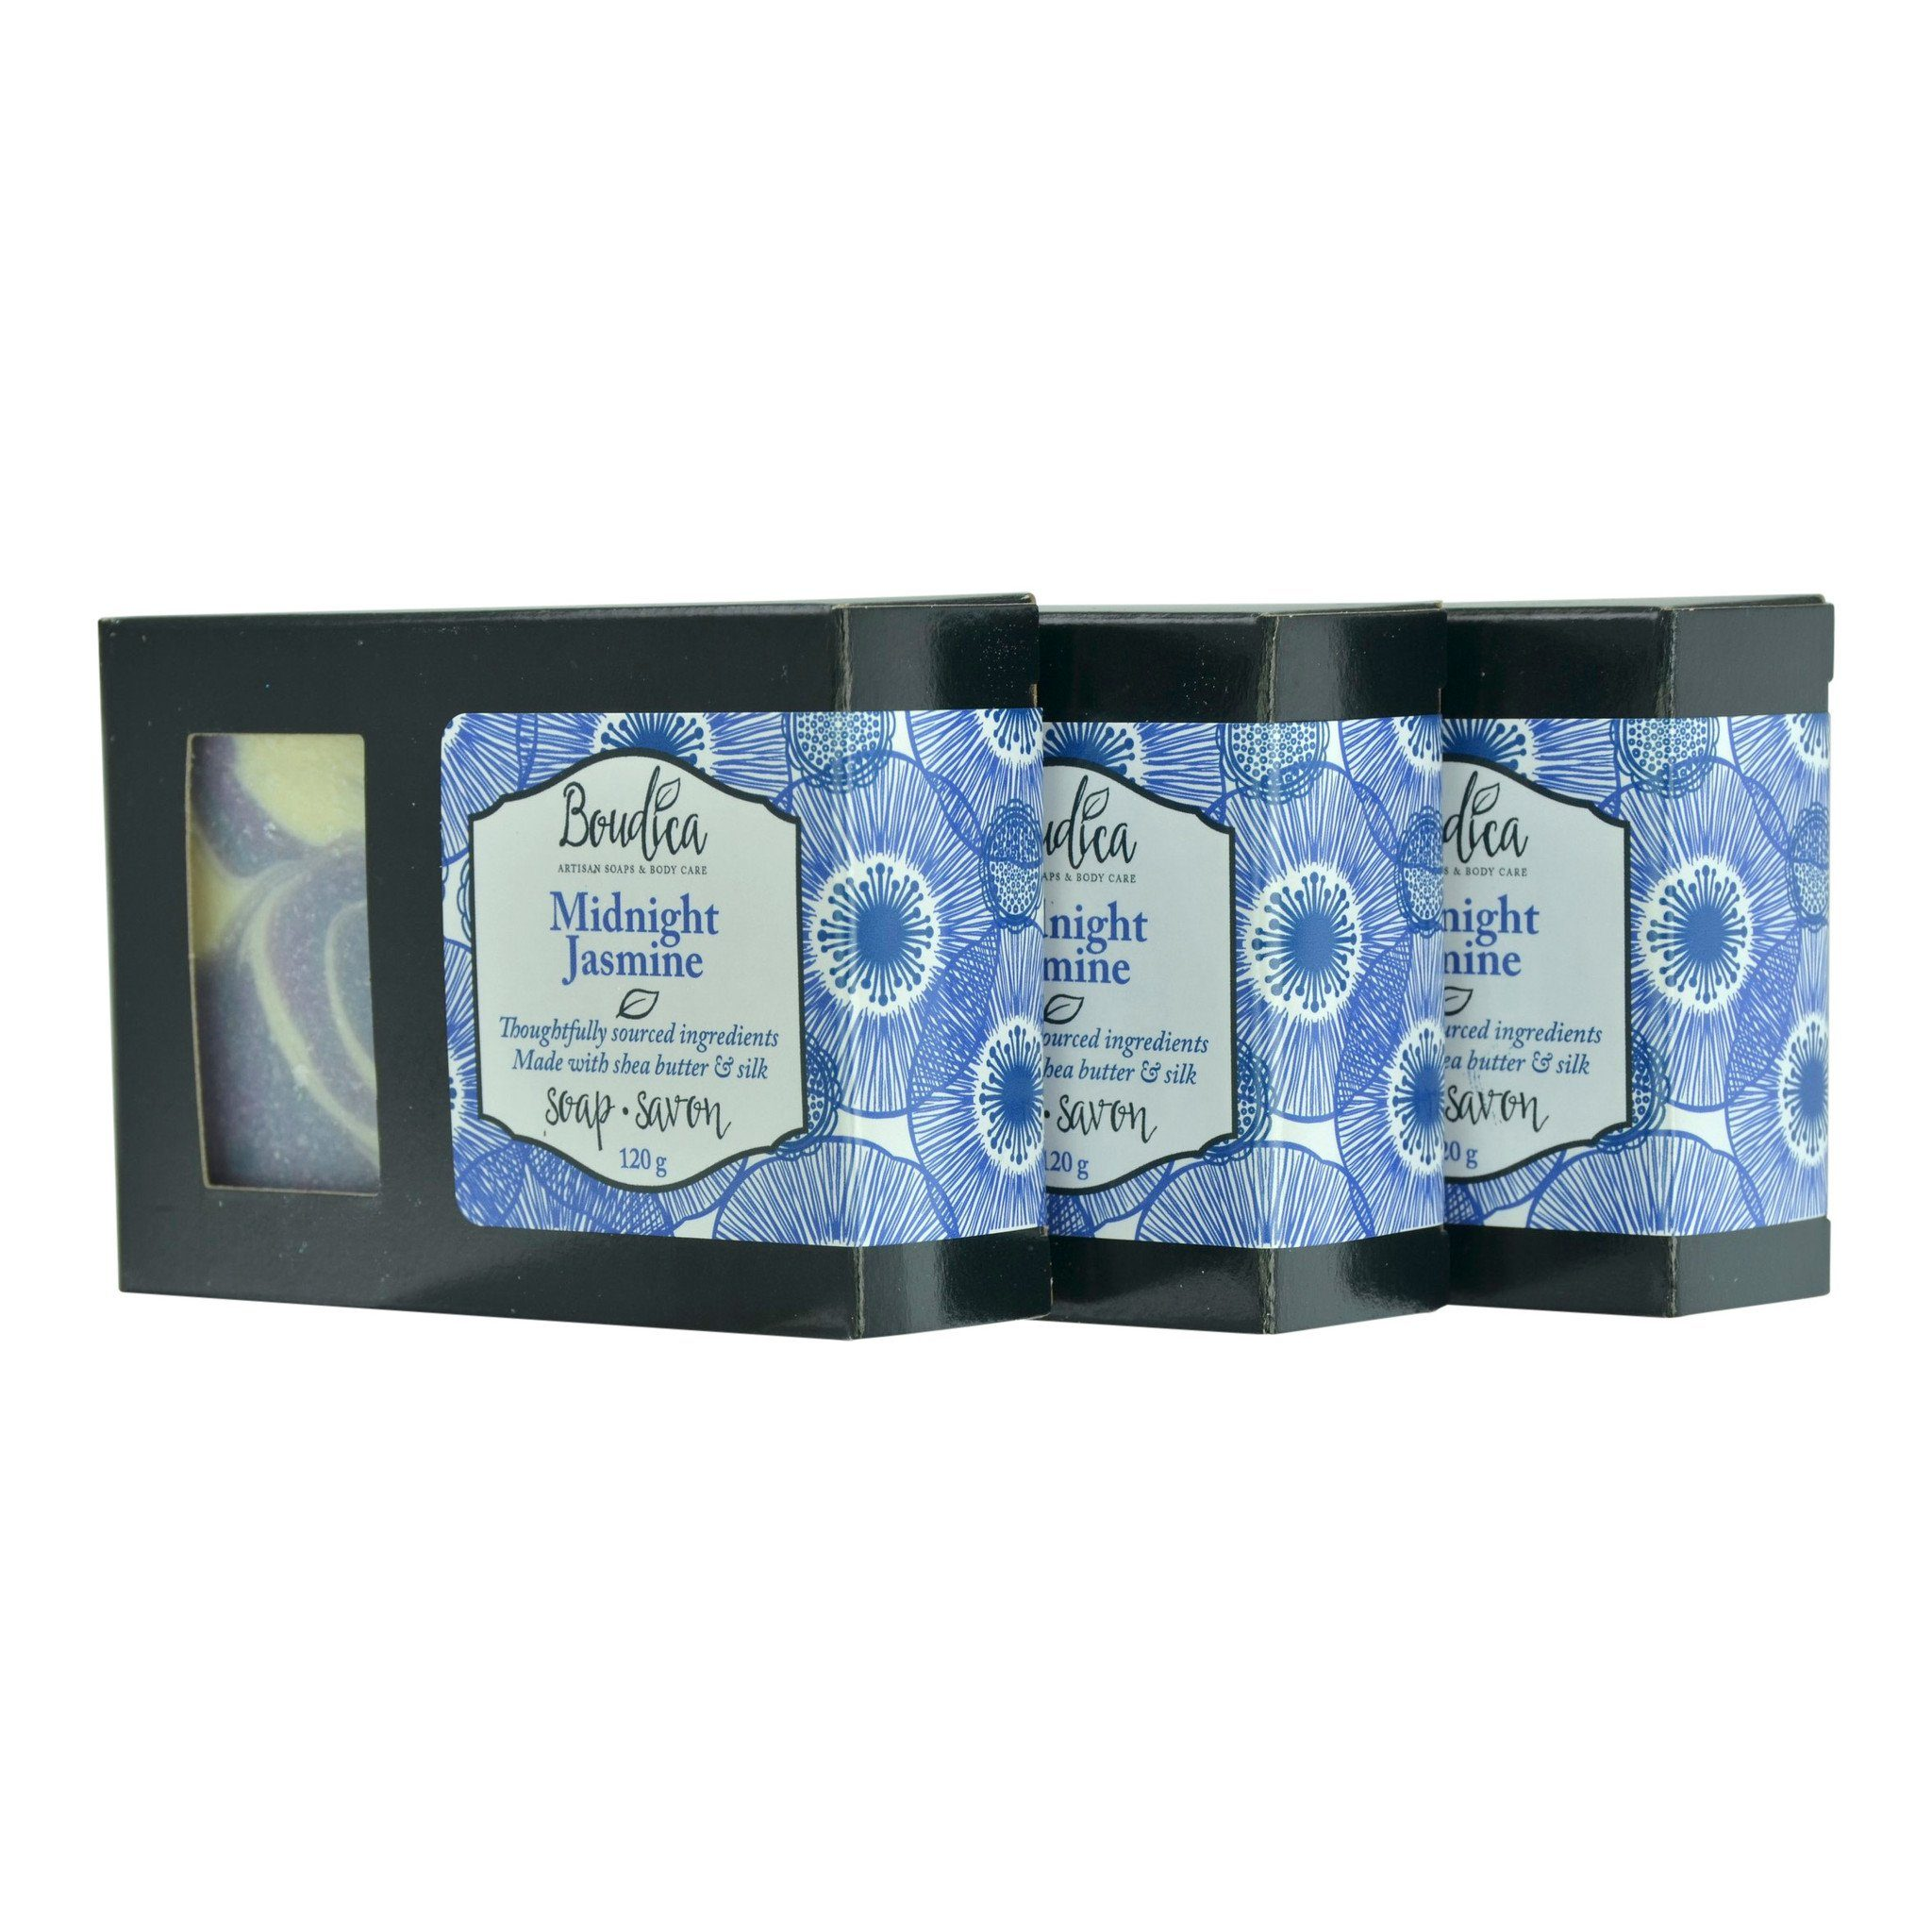 Midnight Jasmine soap, gift packaging - Boudica Body Care